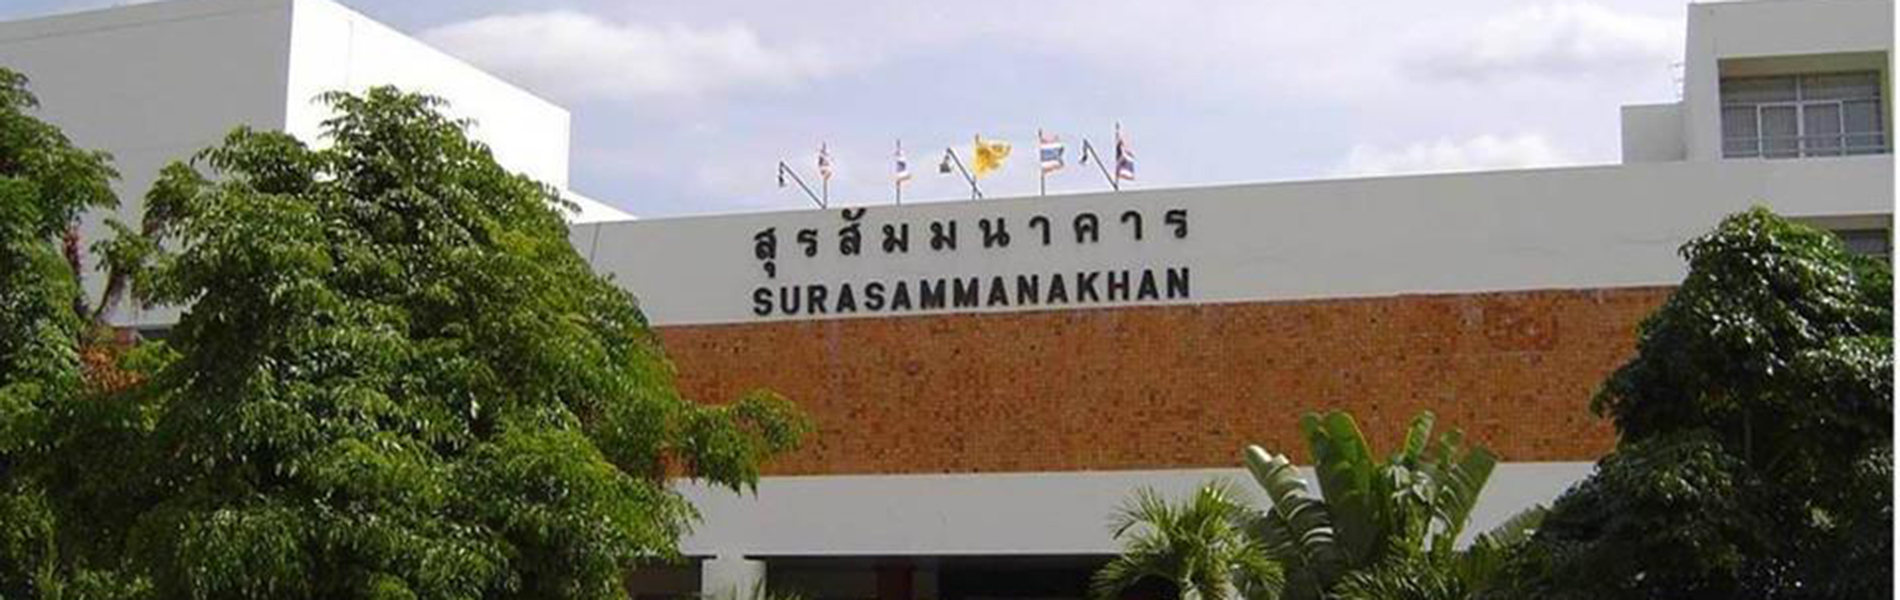 SURASAMMANAKHAN SURANAREE UNIVERSITY OF TECHNOLOGY